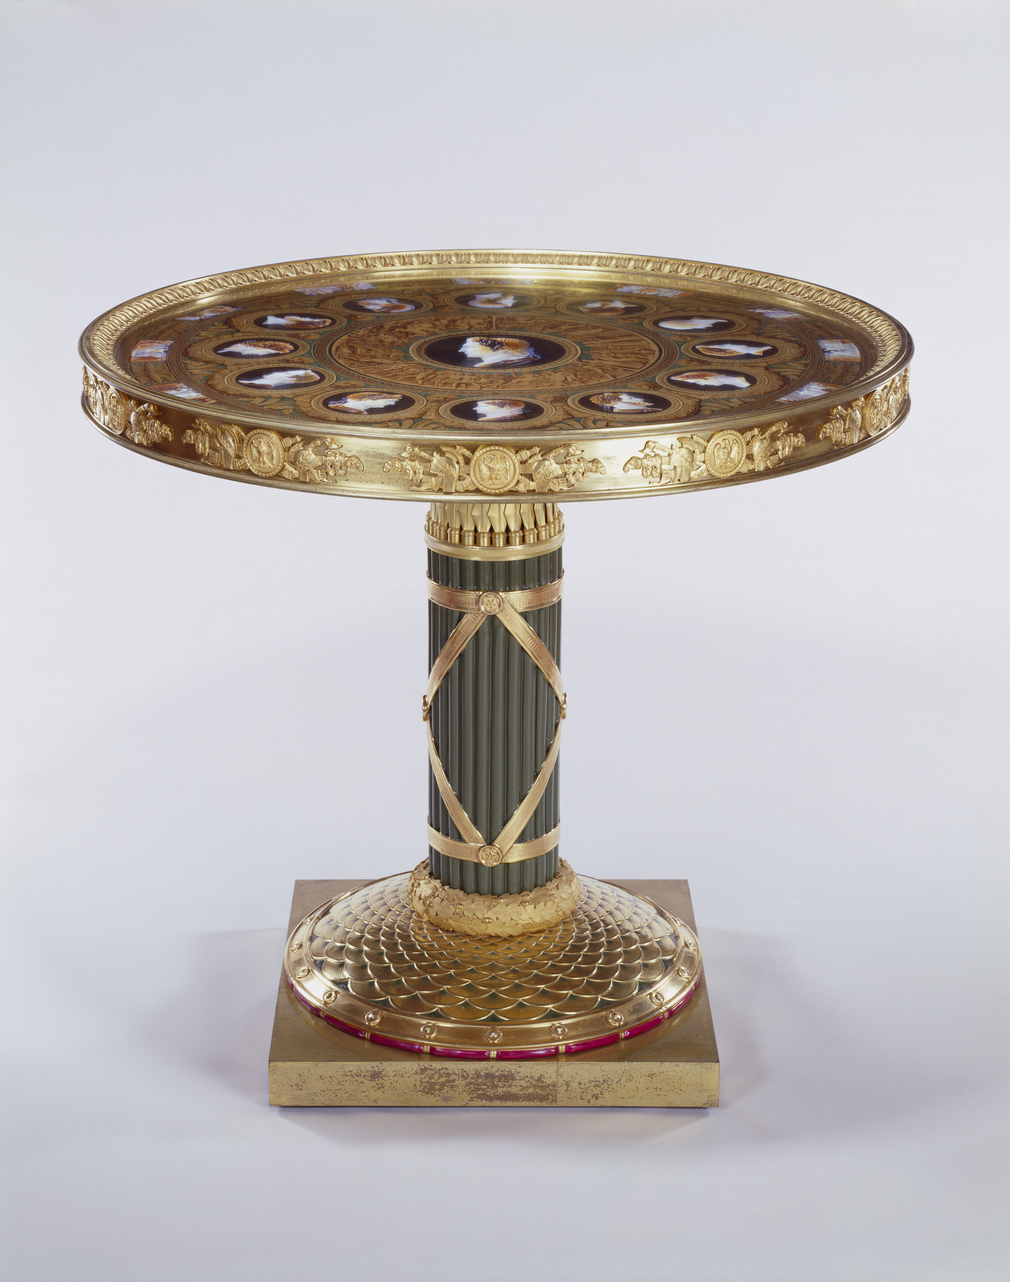 Centre table with circular Sèvres porcelain top with chased gilt bronze mounts, stem-fasces; painted in imitation of classical cameos. In the centre is the head of Alexander the Great, surrounded by an outer circle of heads of twelve commanders fro